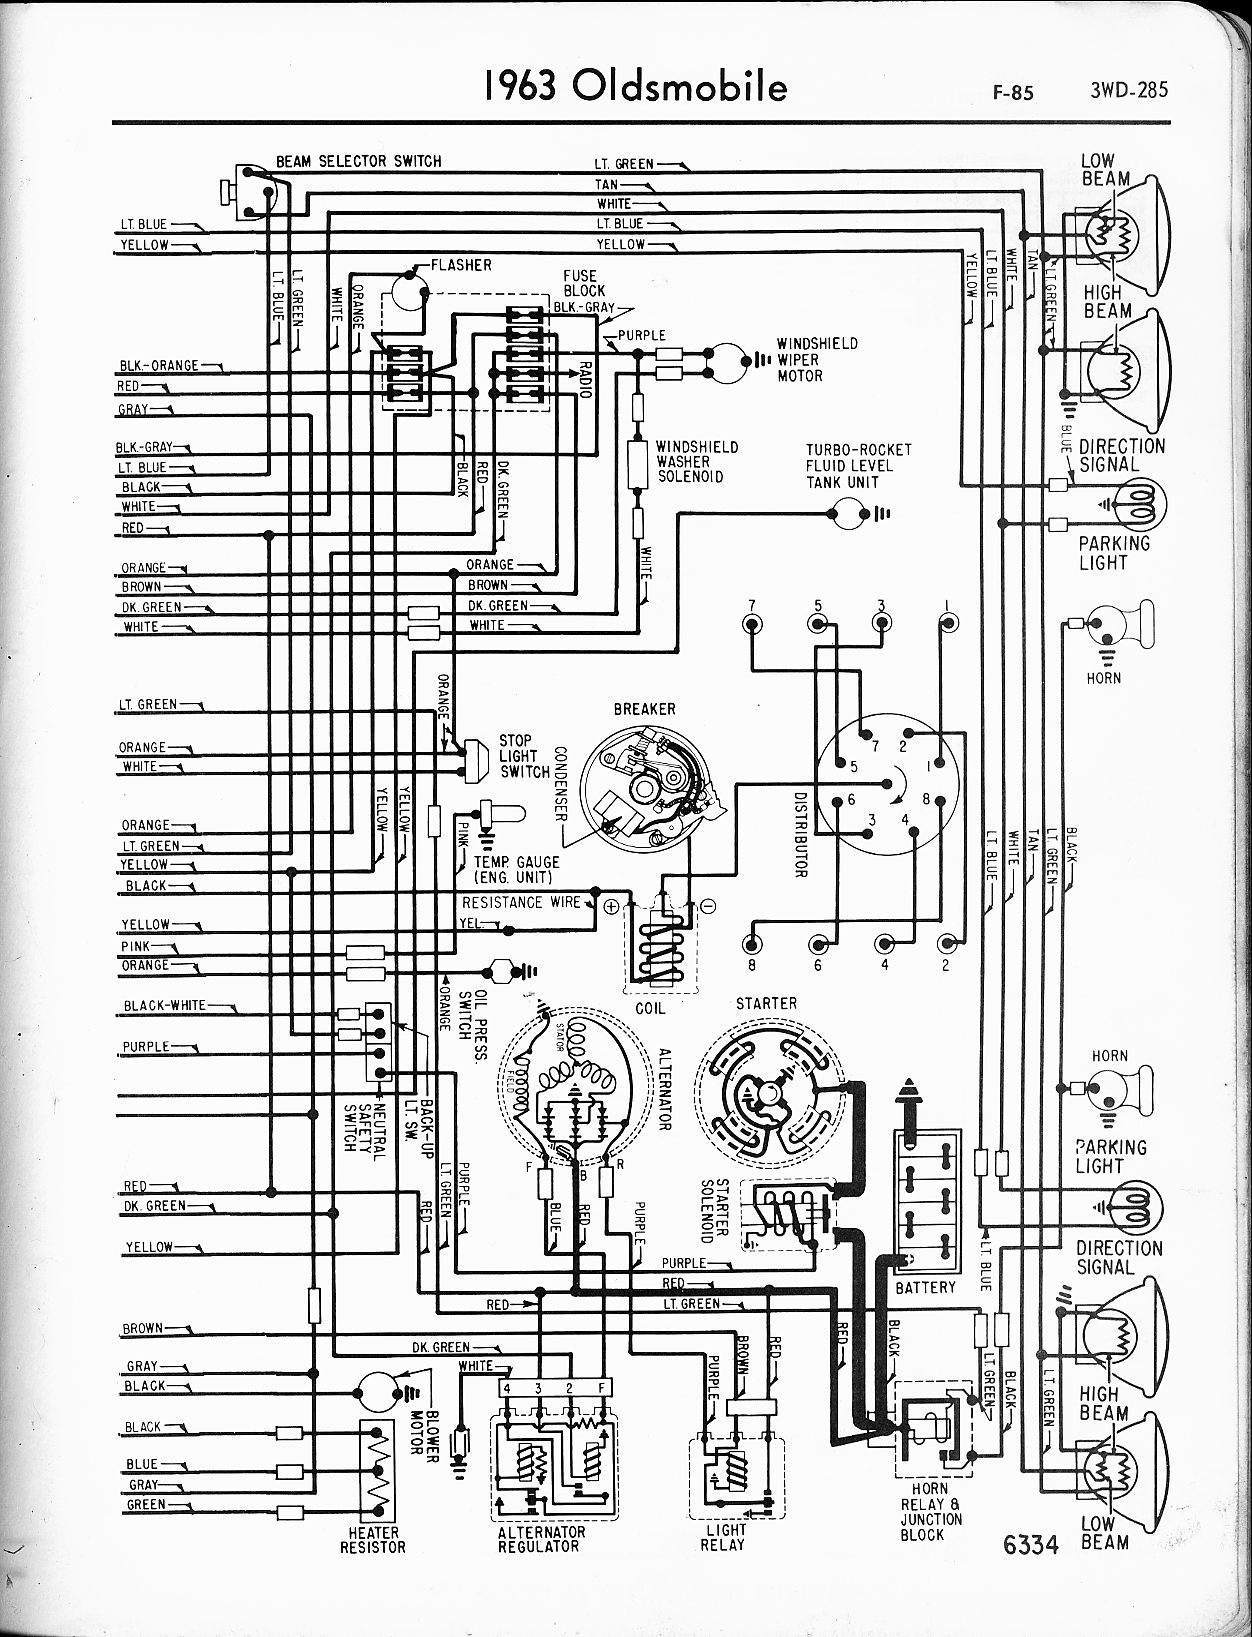 Wiring Diagram Radio For 1996 Oldsmobile List Of Schematic Circuit Stereo Harness Diagrams The Old Car Manual Project Rh Oldcarmanualproject Com